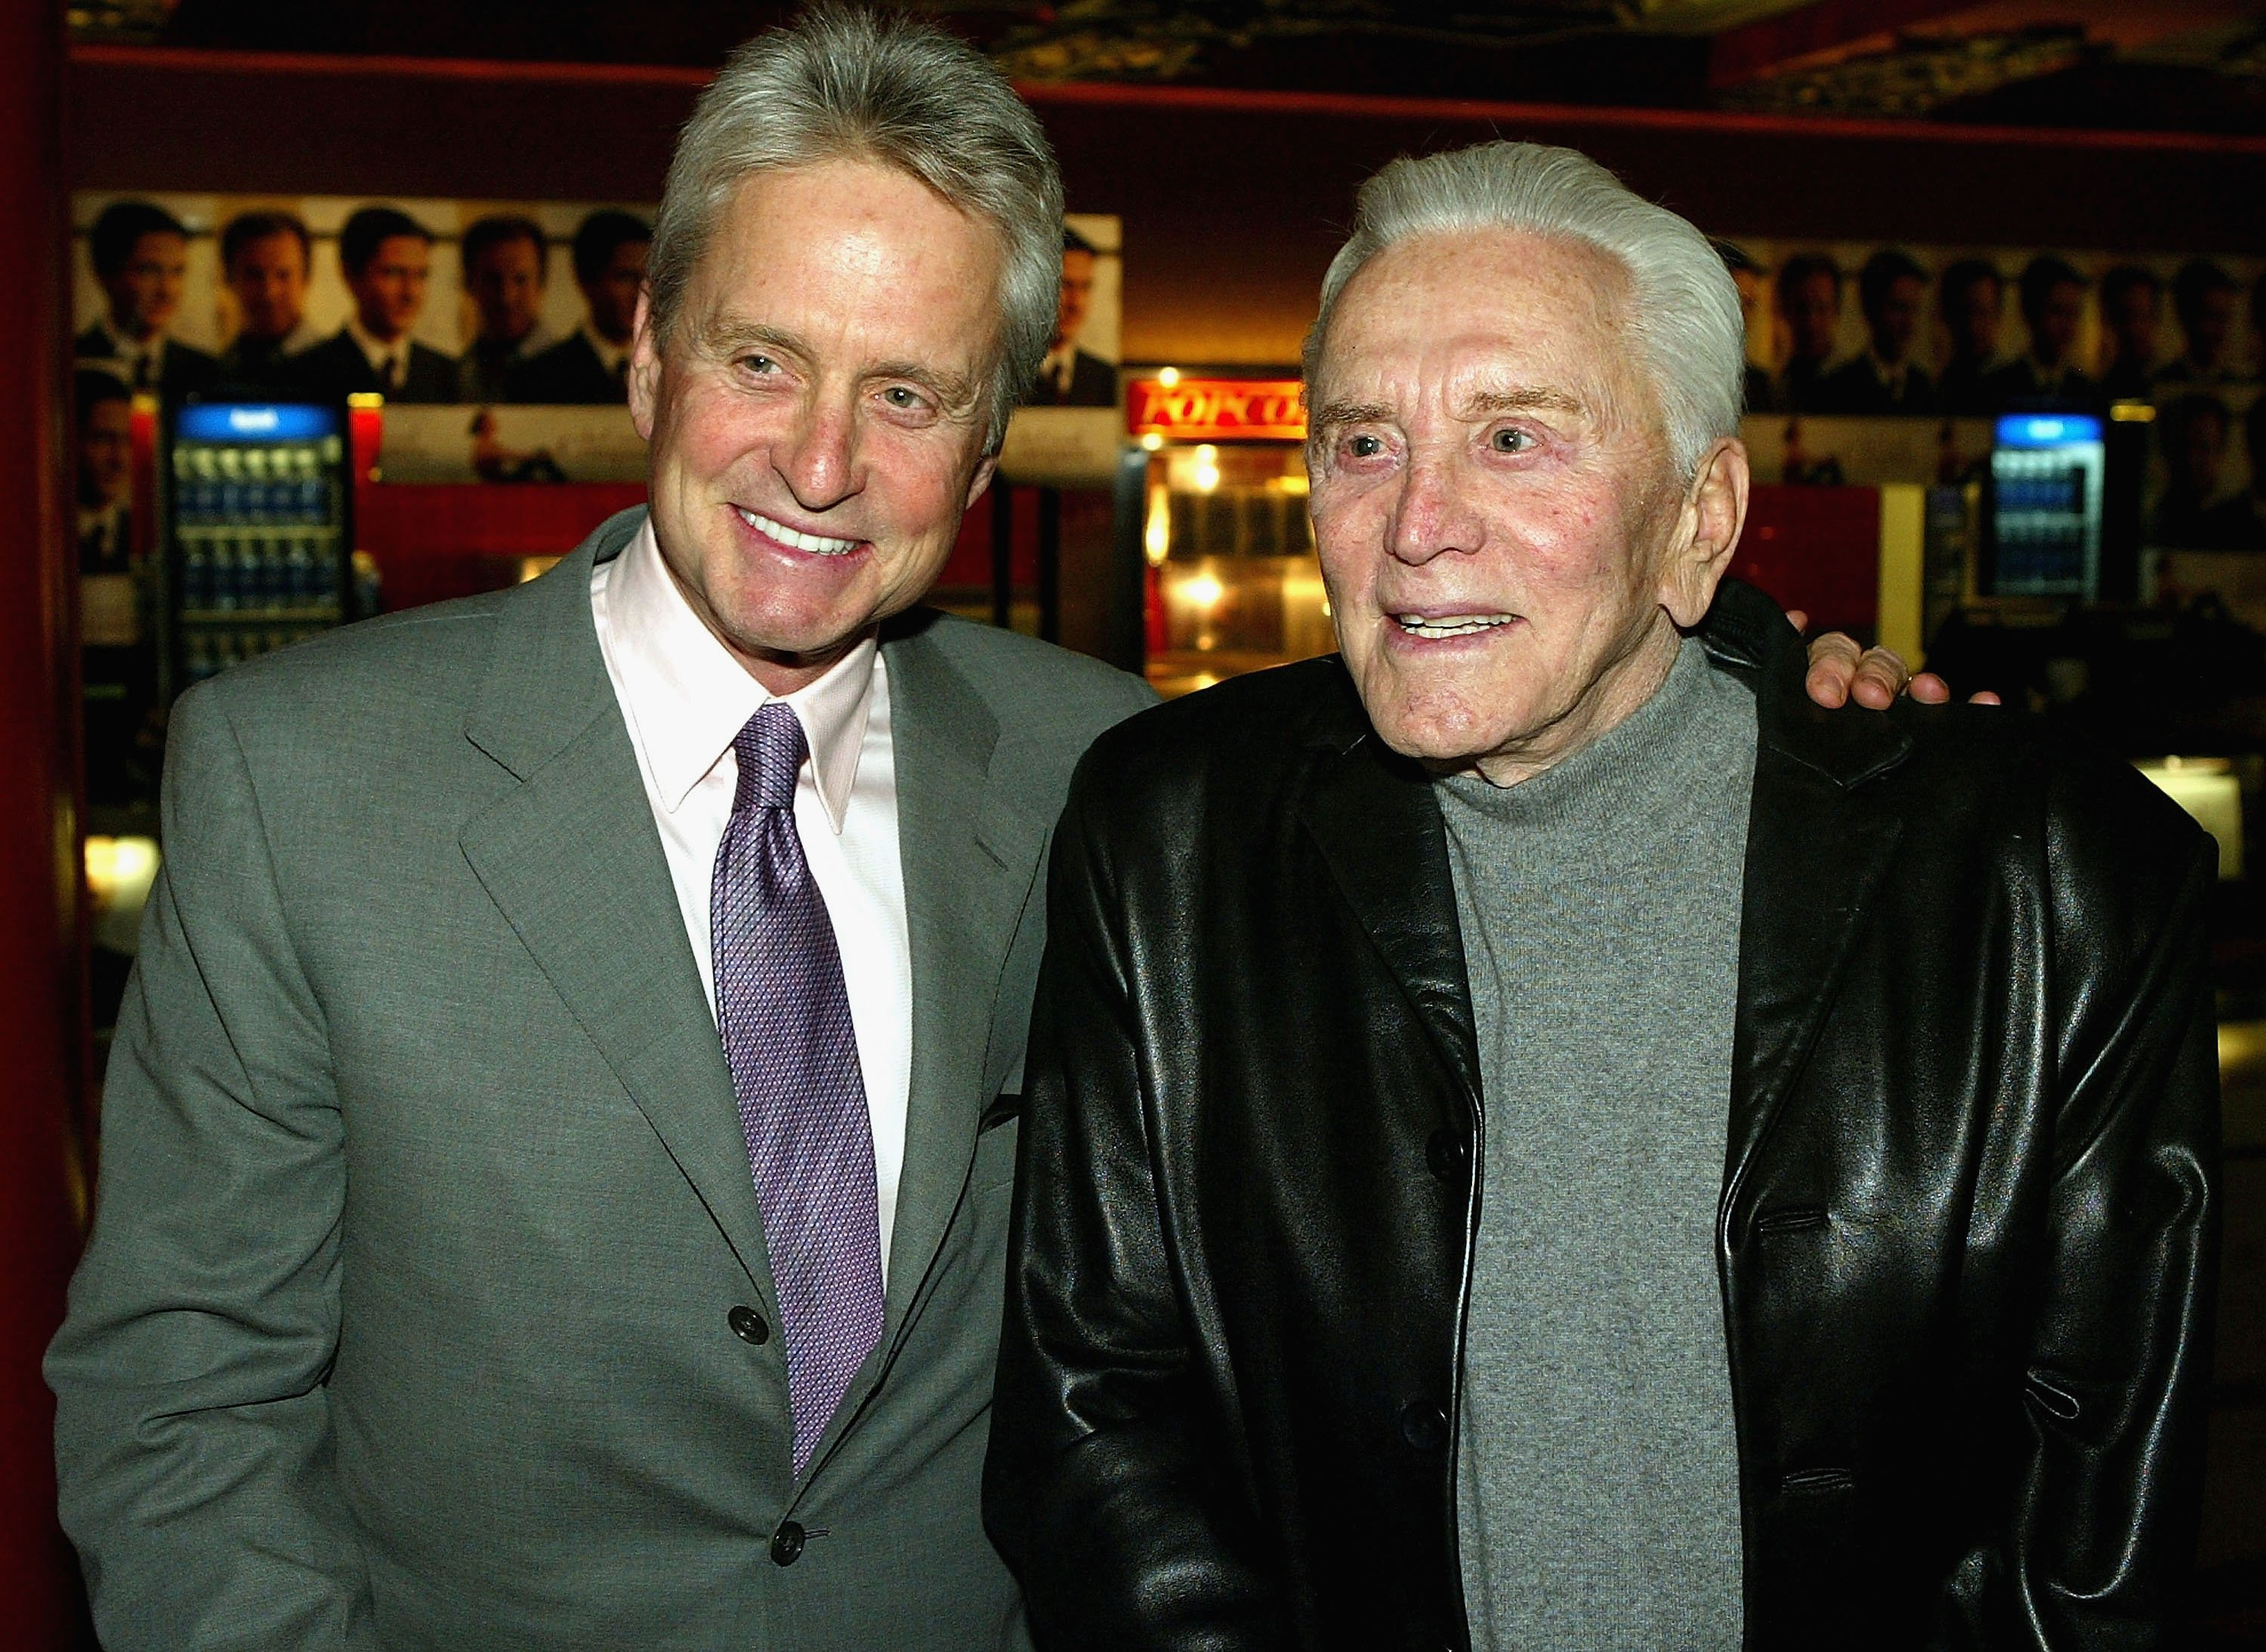 Actors Michael Douglas and Kirk Douglas attend the hand and footprints ceremony honoring Valenti at the Grauman's Chinese Theater December 6, 2004, in Hollywood, California. | Source: Getty Images.